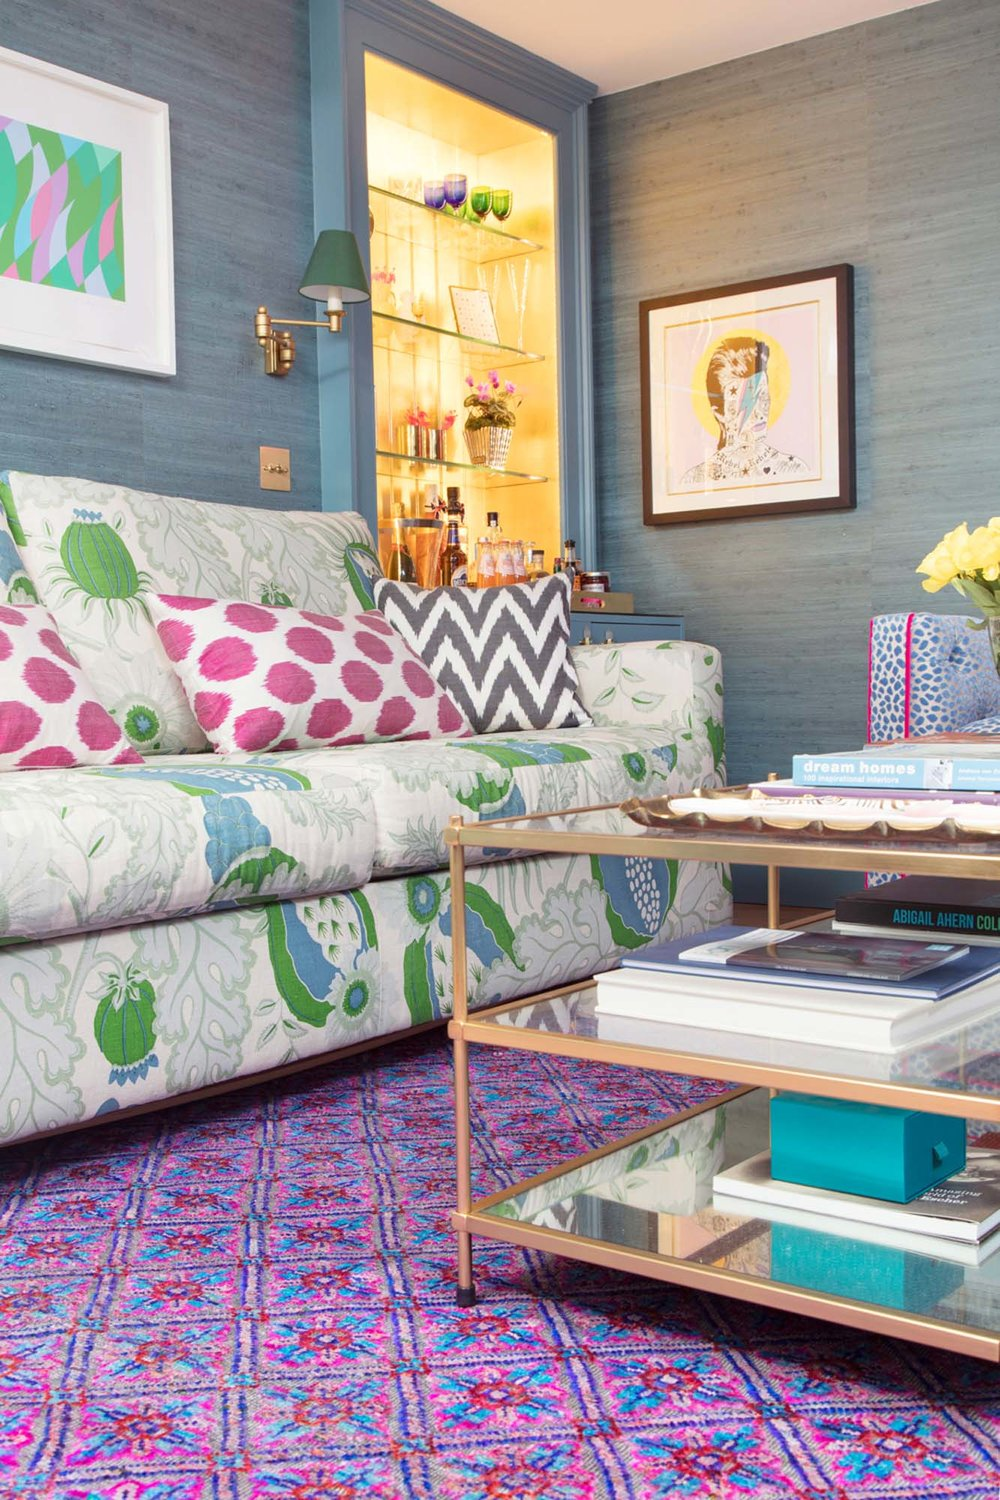 Wendy Morrison Design 'Govind' rug in The Pink House Den/Photo: Susie Lowe